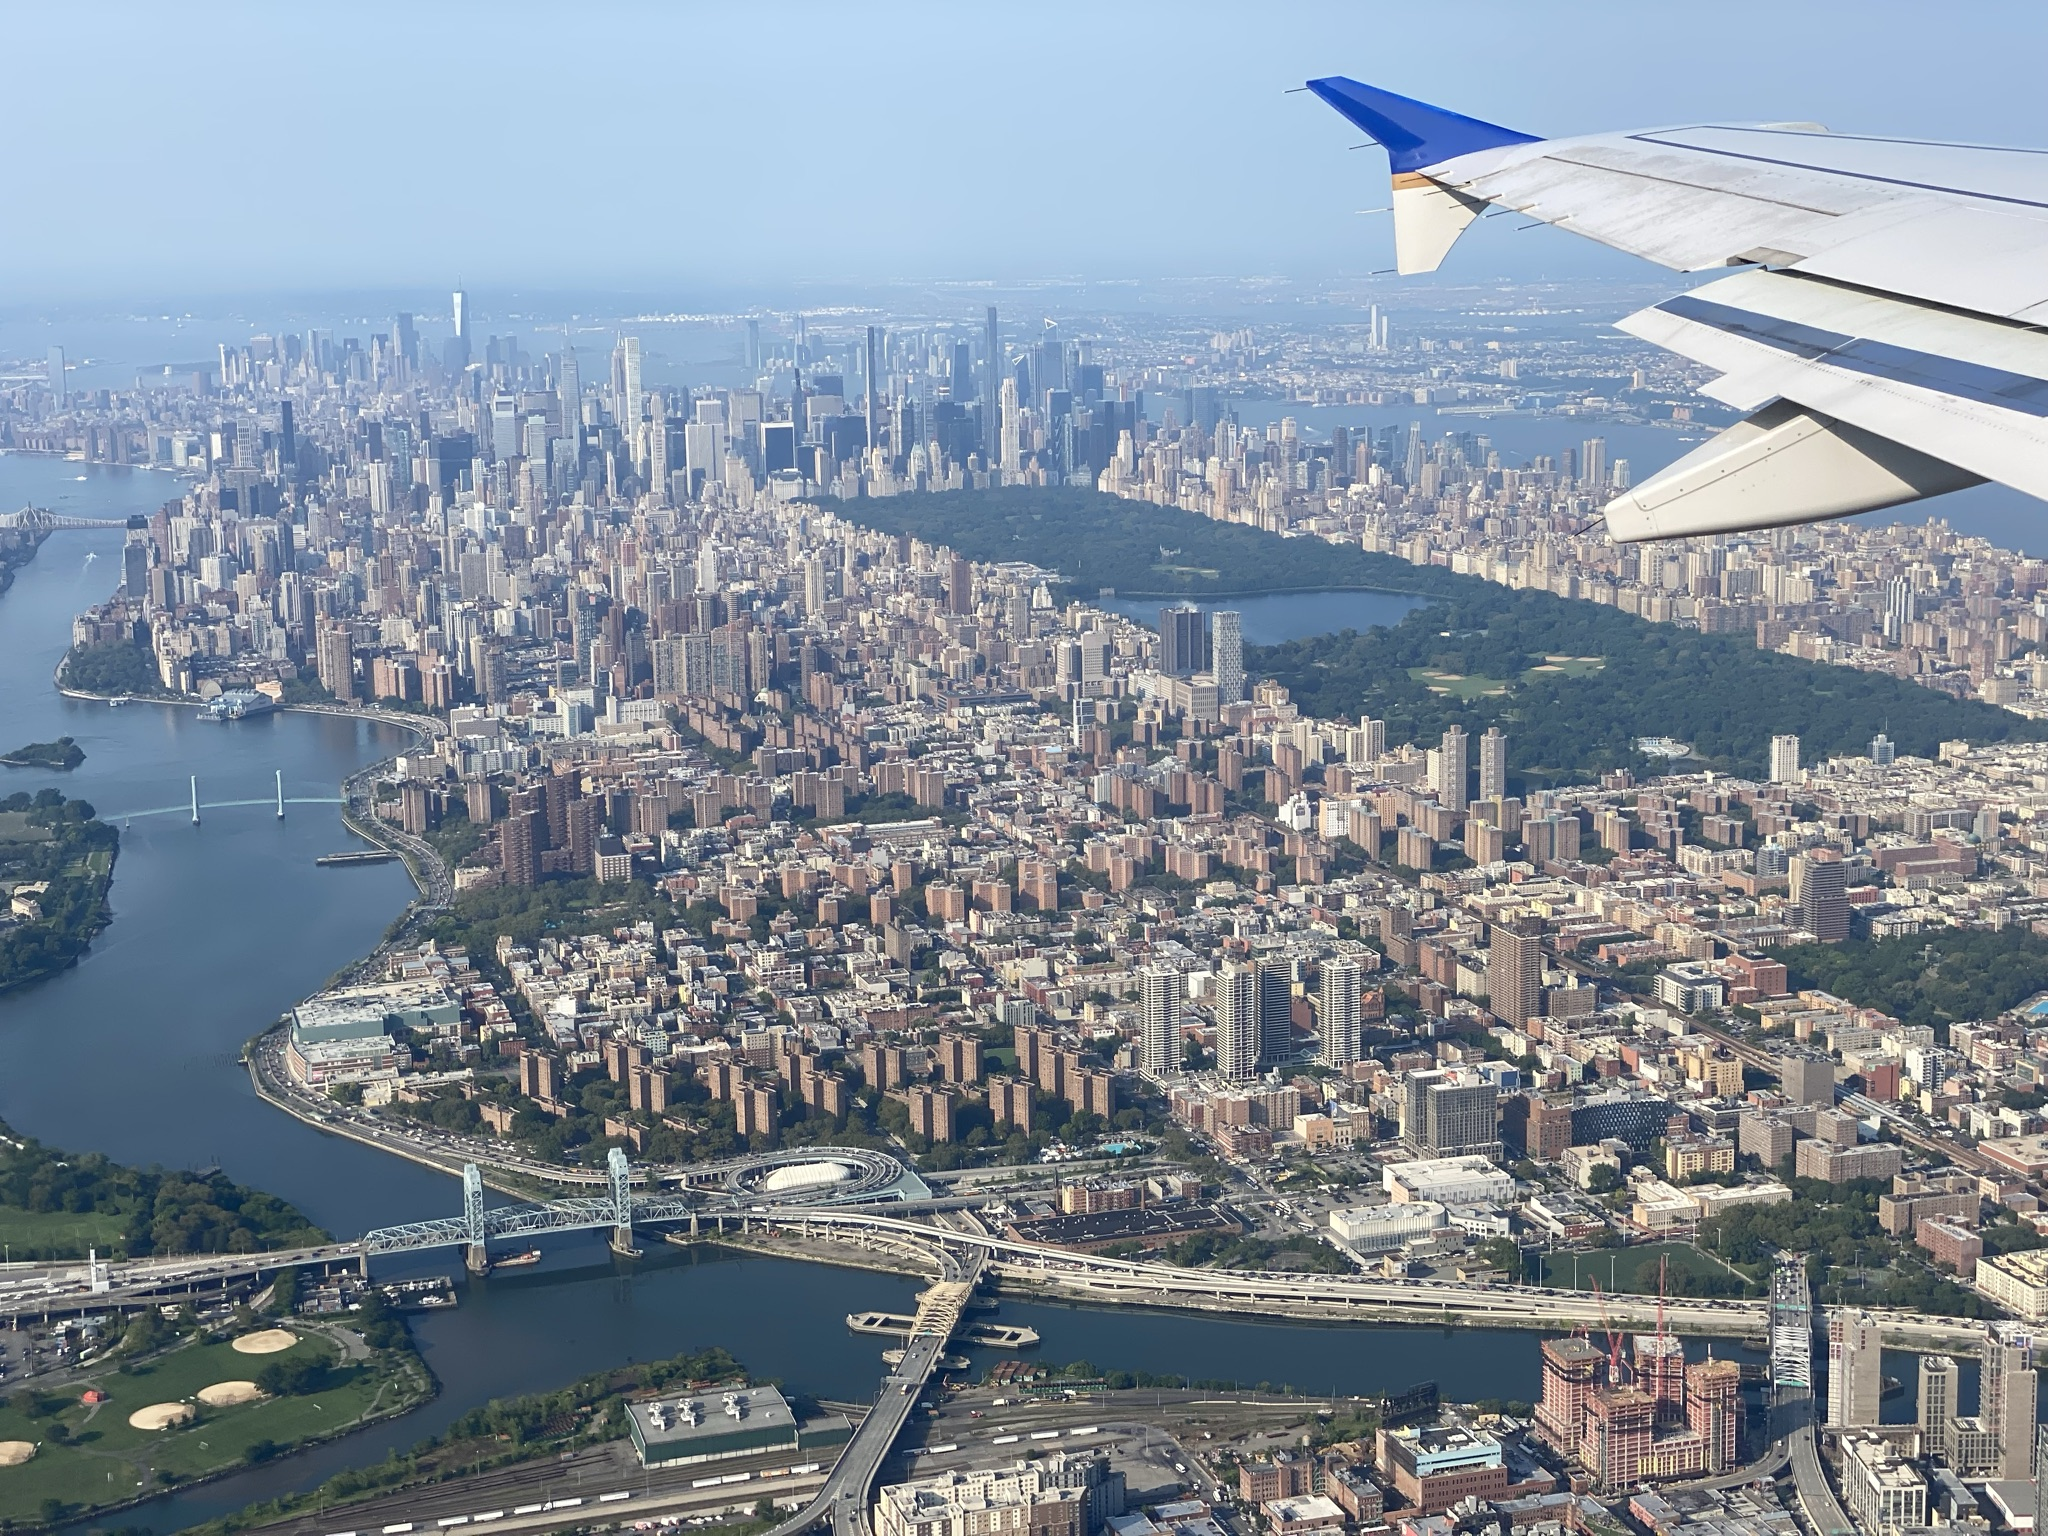 United Airlines' A320 wing, a view out the window flying over New York